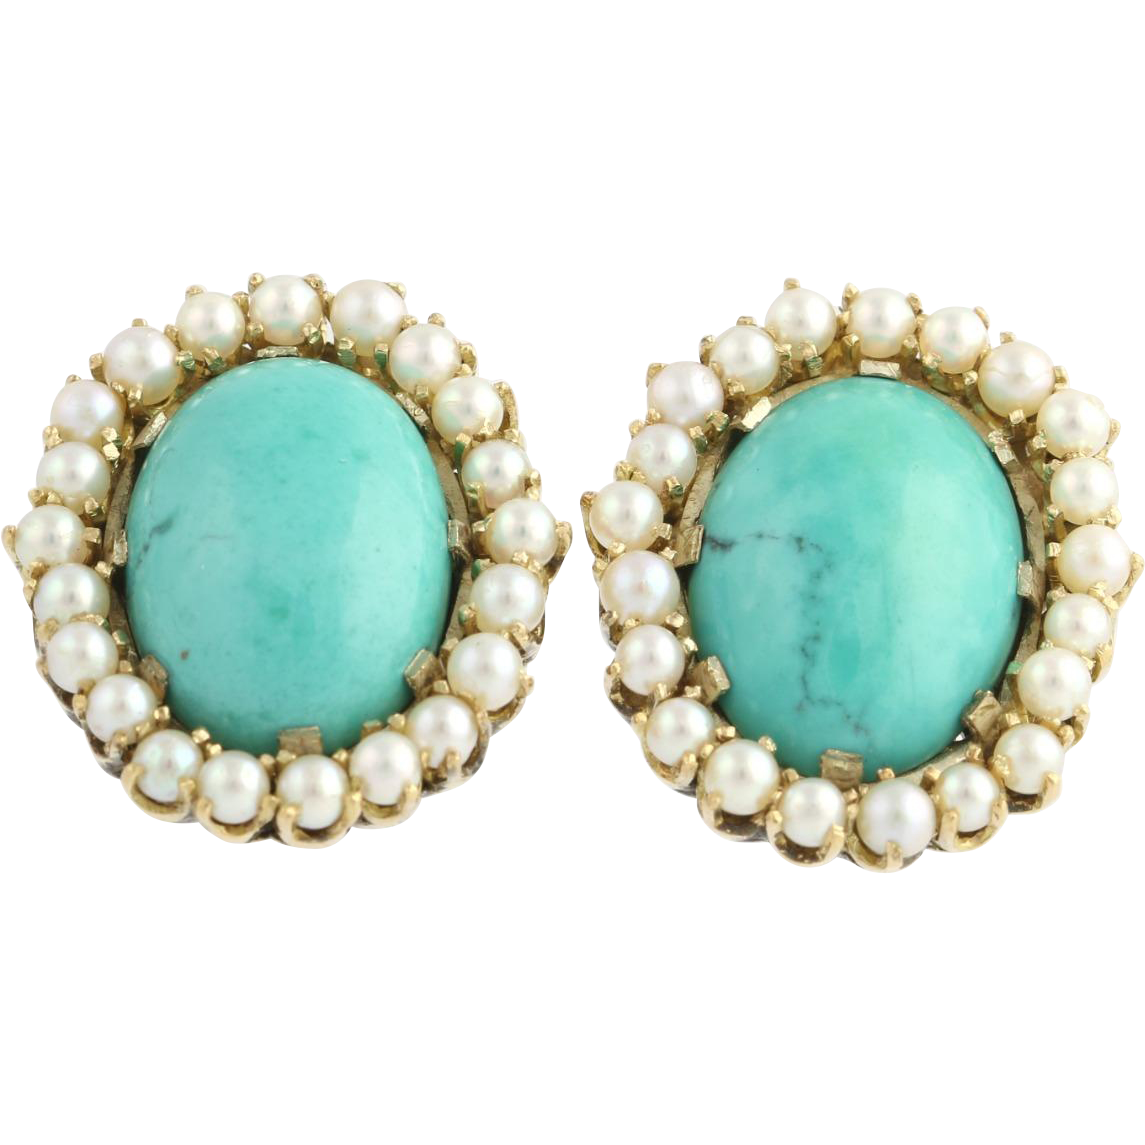 Turquoise & Cultured Pearl Earrings - 10k Yellow Gold Polished Estate Pierced